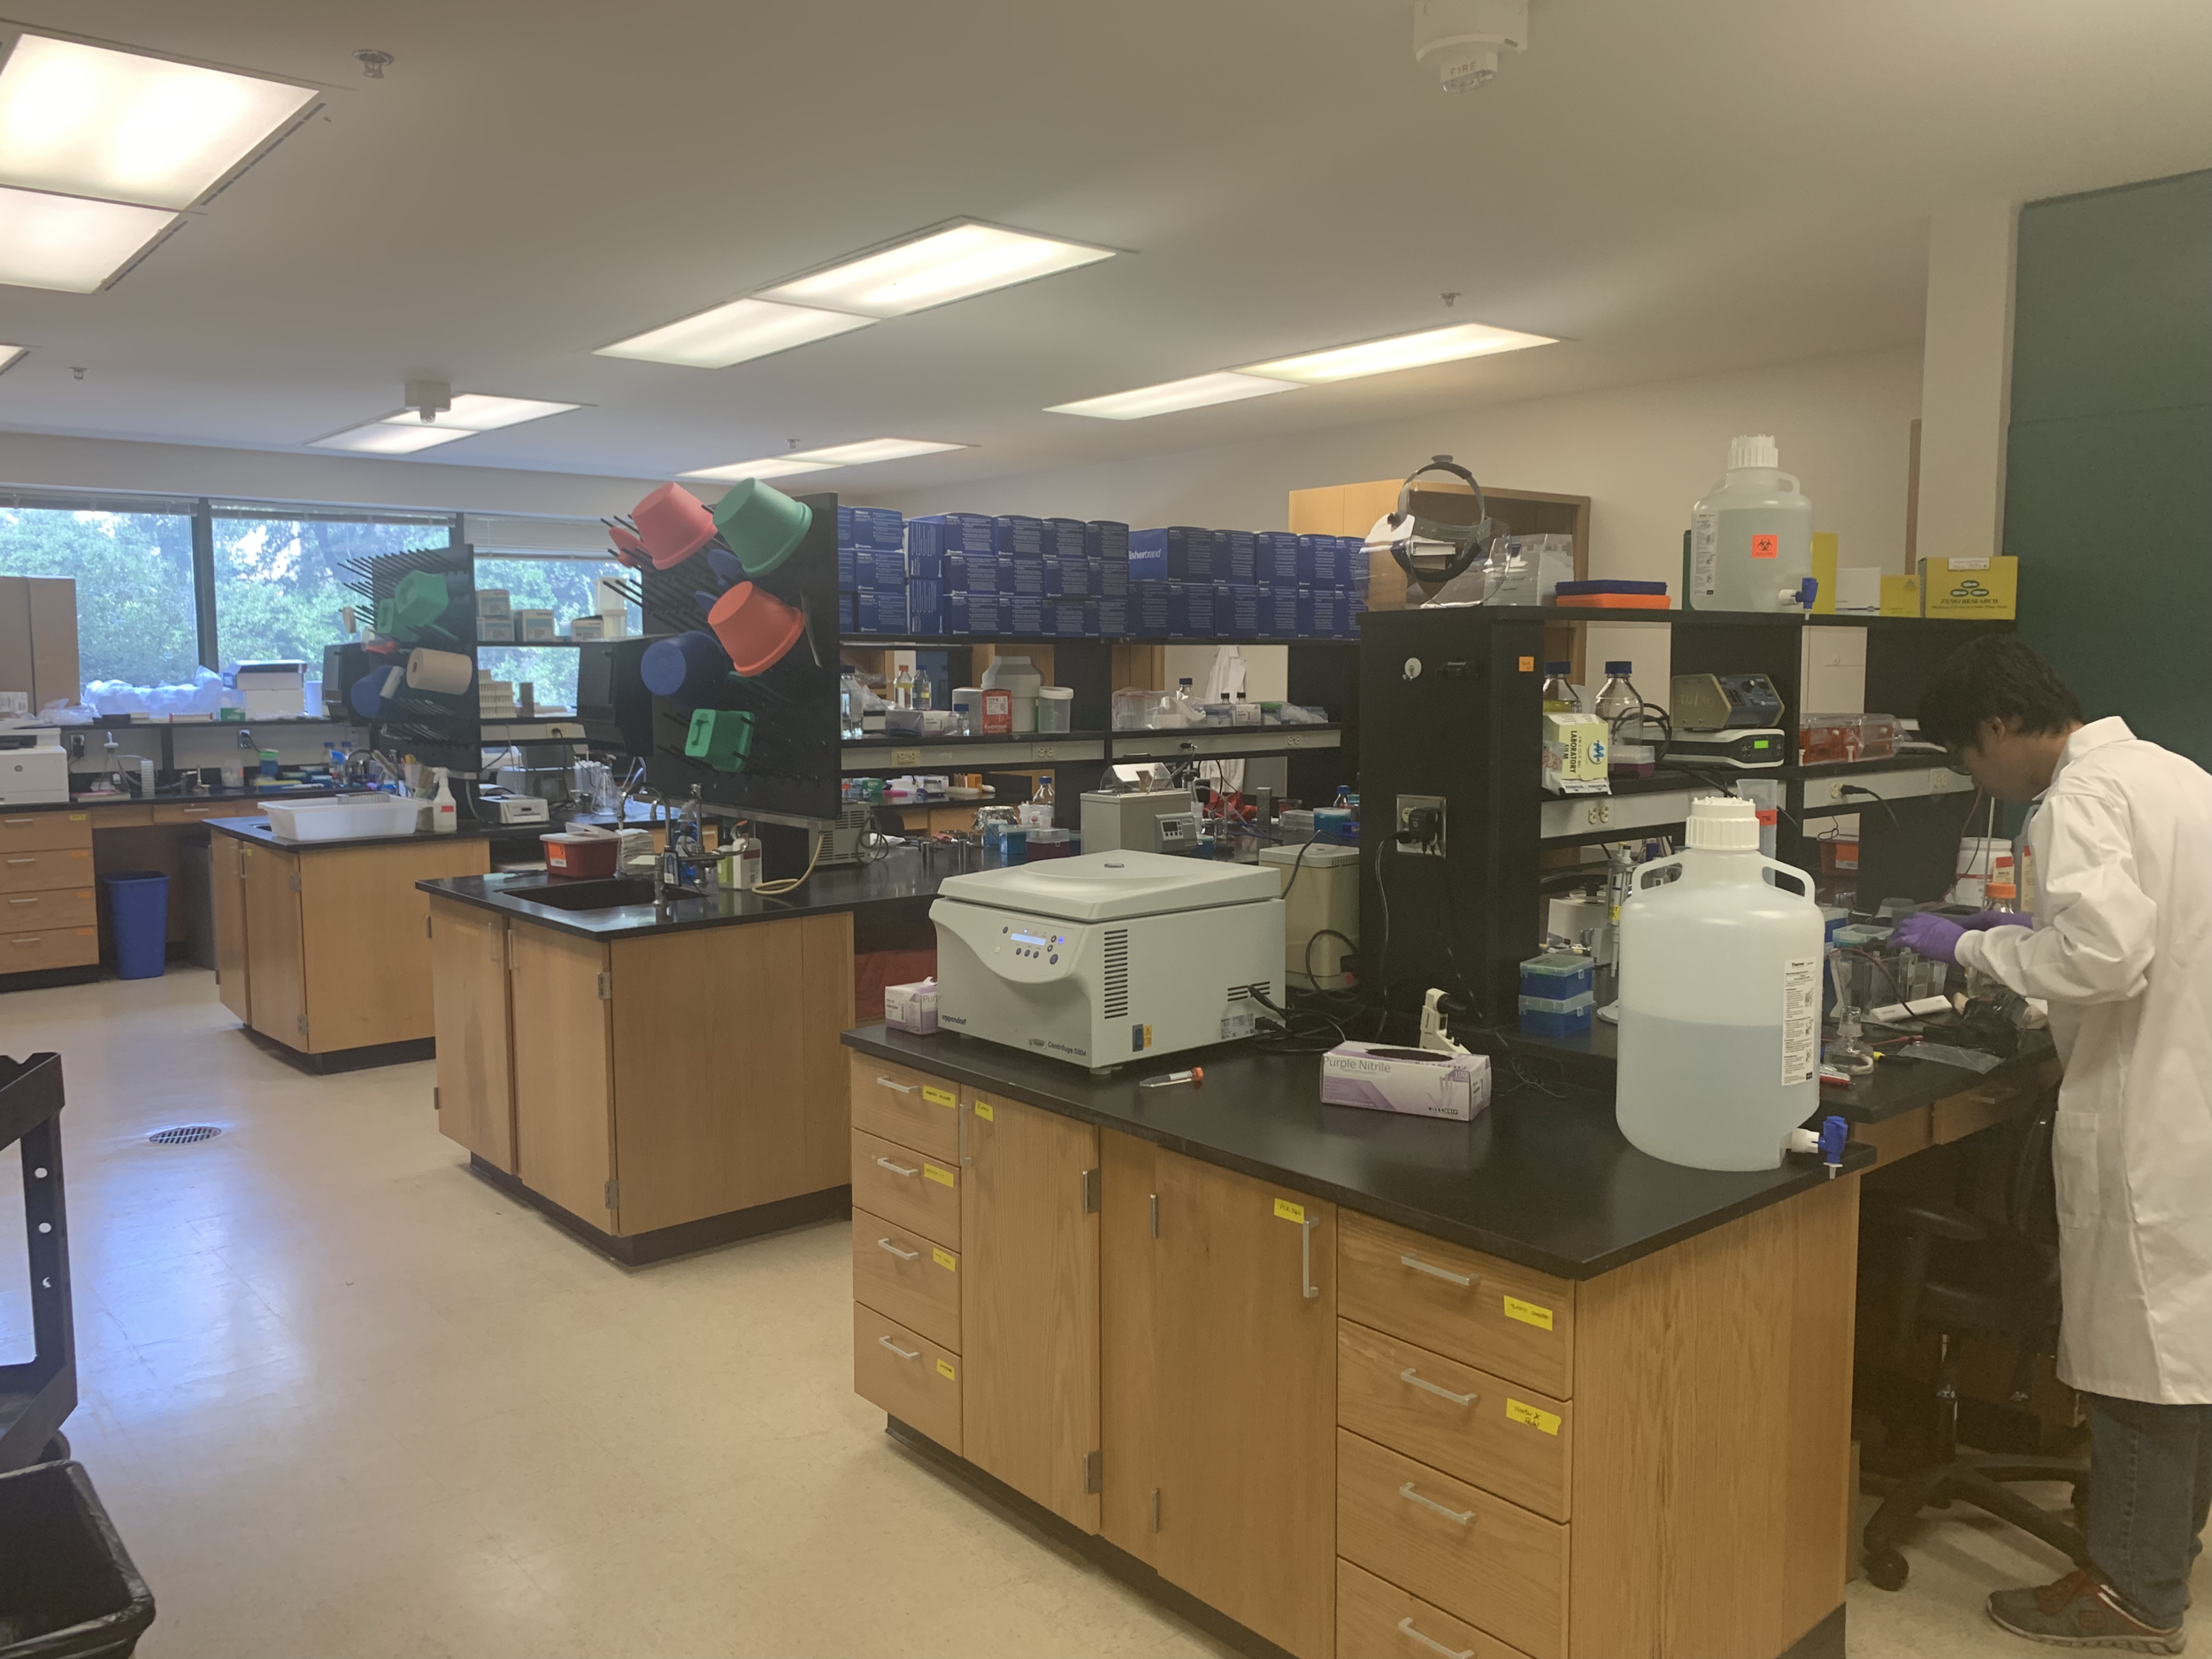 Our lab is fully set up! August is running his RNA gel (right side of the image).